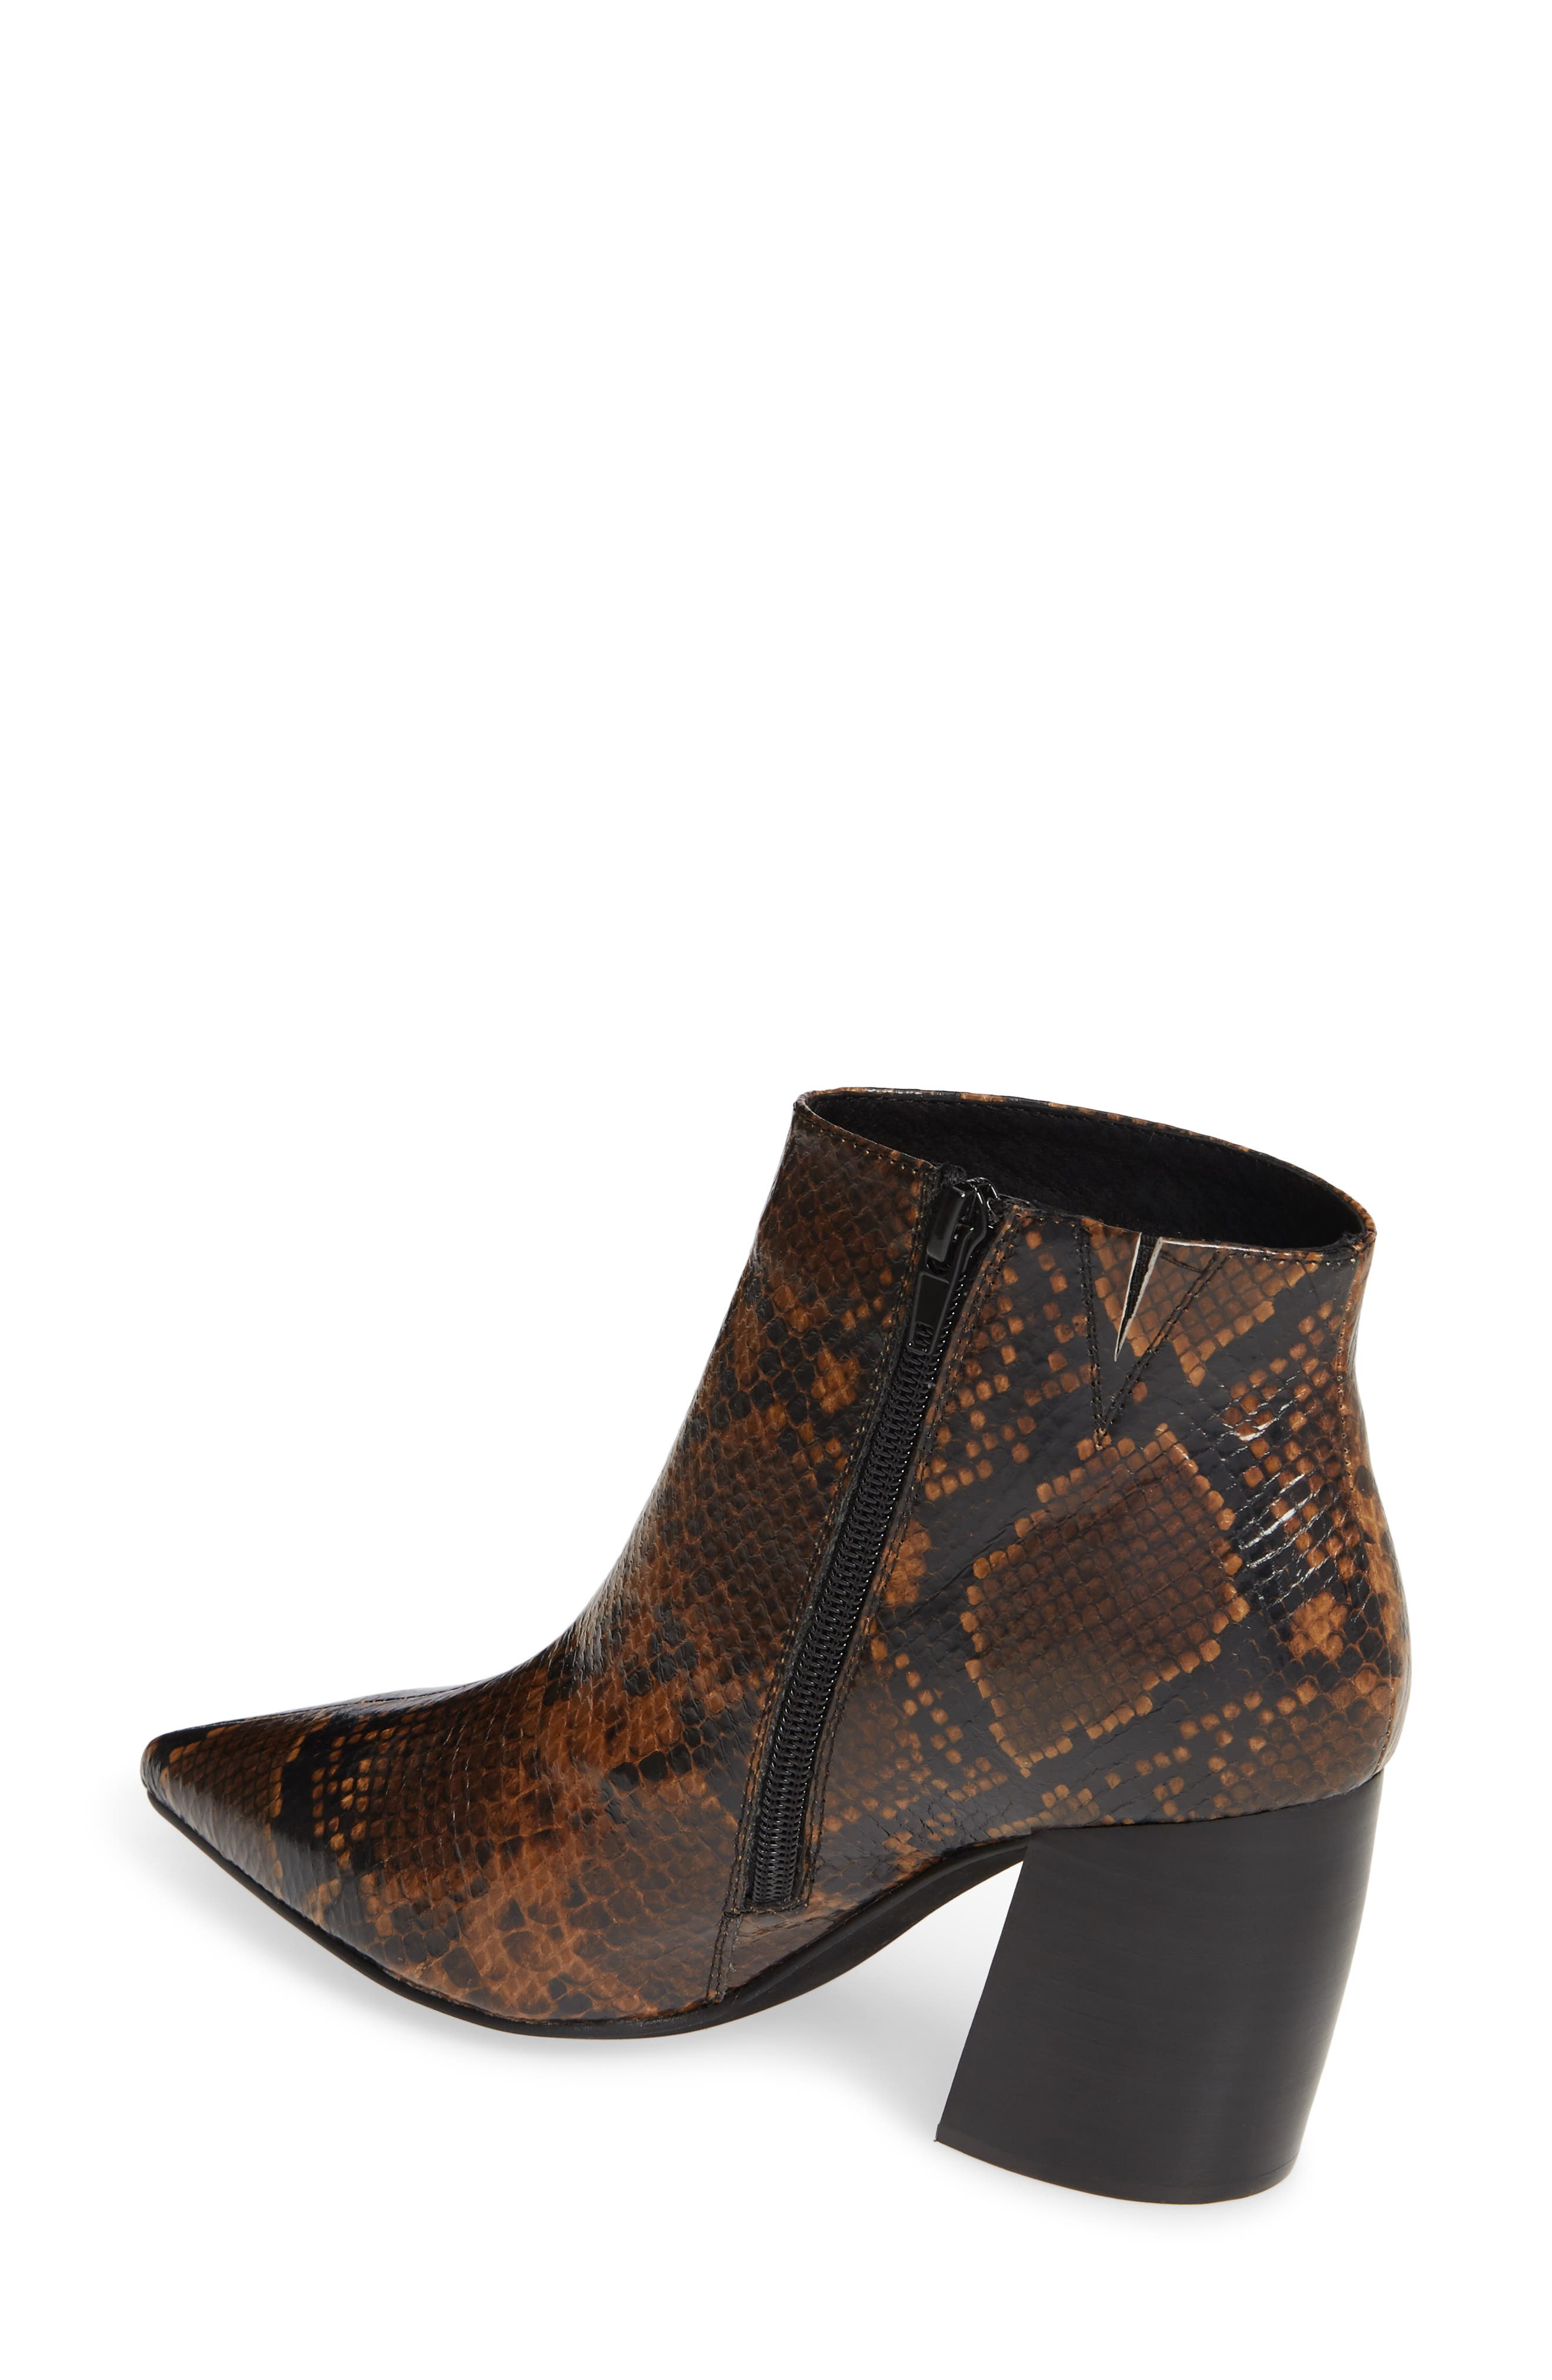 JEFFREY CAMPBELL, Final Bootie, Alternate thumbnail 2, color, NATURAL/ BLACK SNAKE PRINT